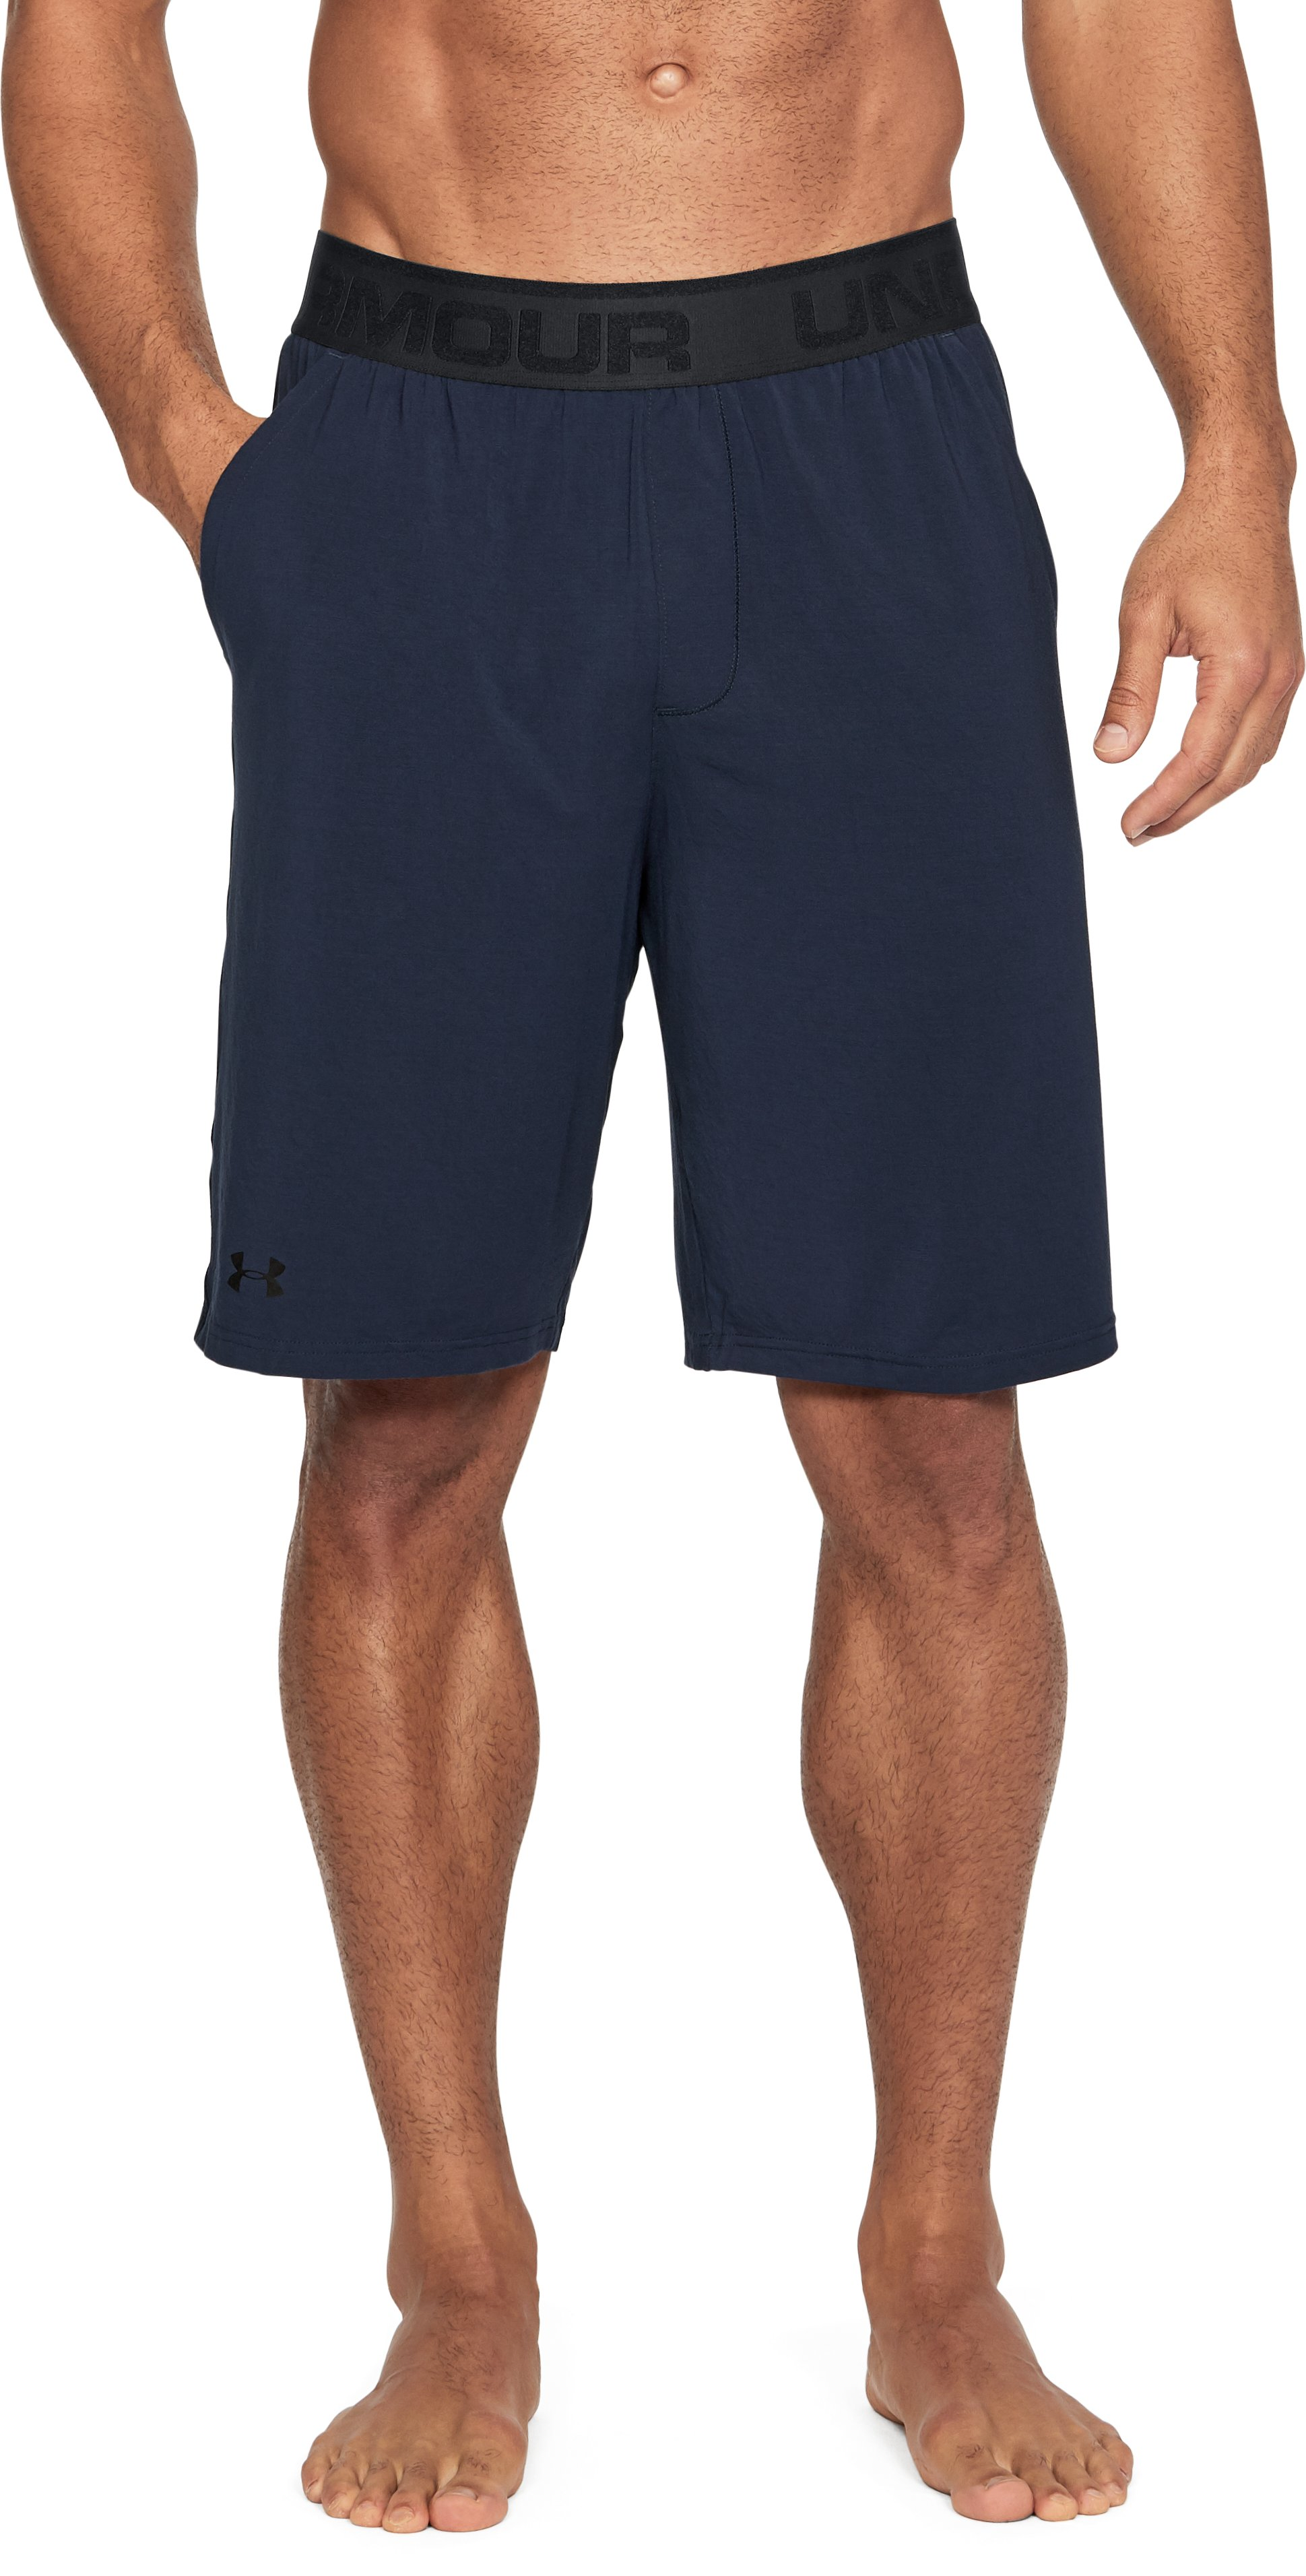 Men's Athlete Recovery Ultra Comfort Sleepwear Shorts, Midnight Navy